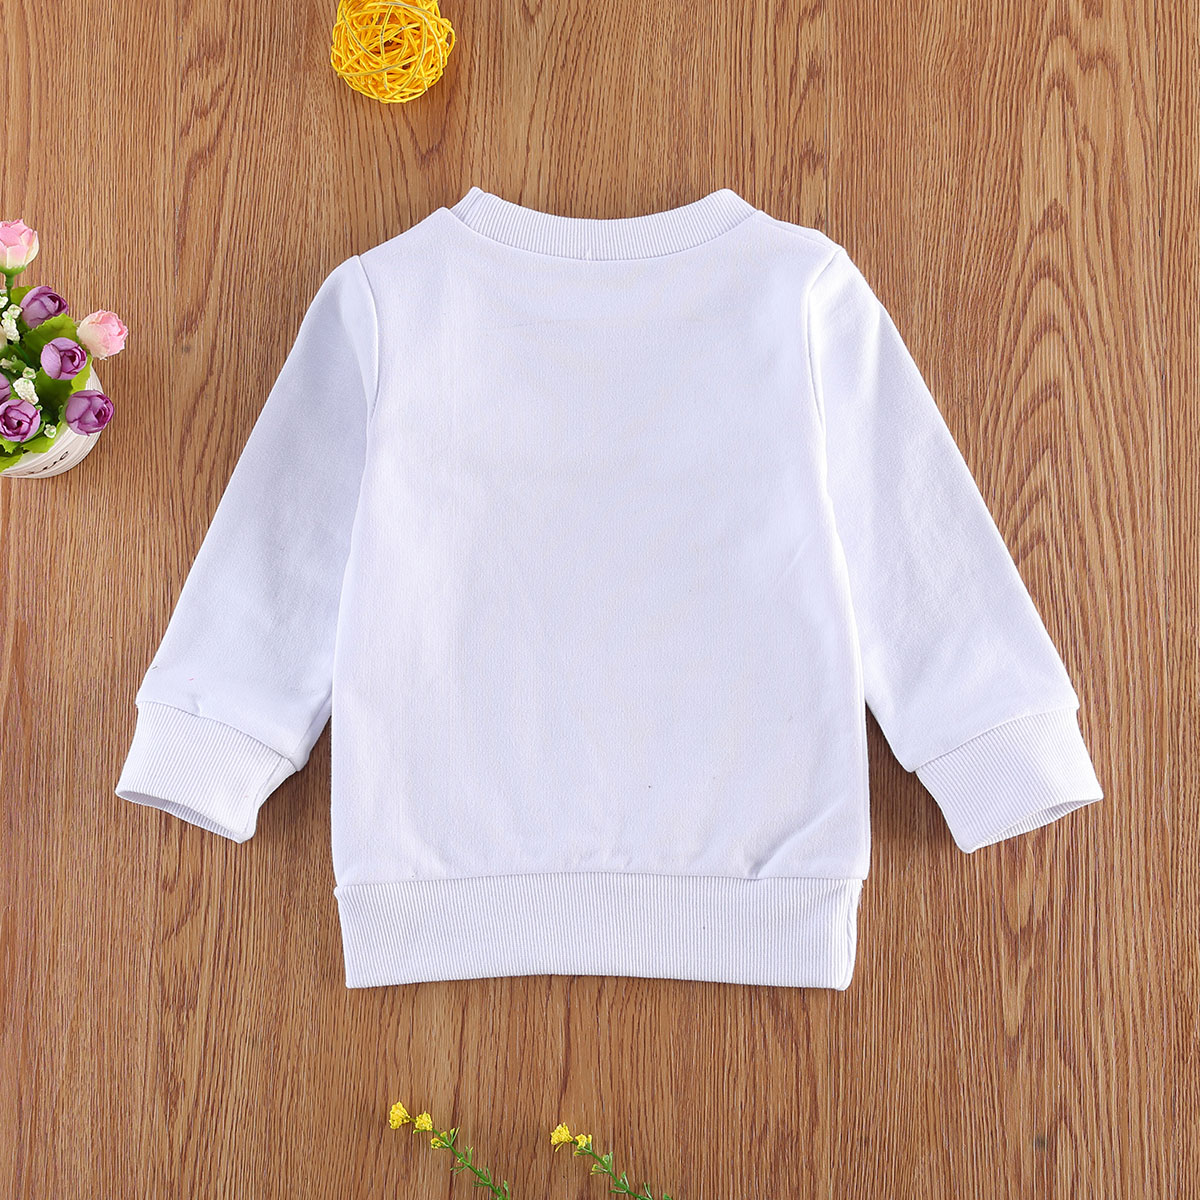 Pudcoco Newest Fashion Newborn Baby Clothes Long Sleeve Letter Print O-Neck Sweatshirt Tops Outfit Clothes For Girl Boy Bbay 2